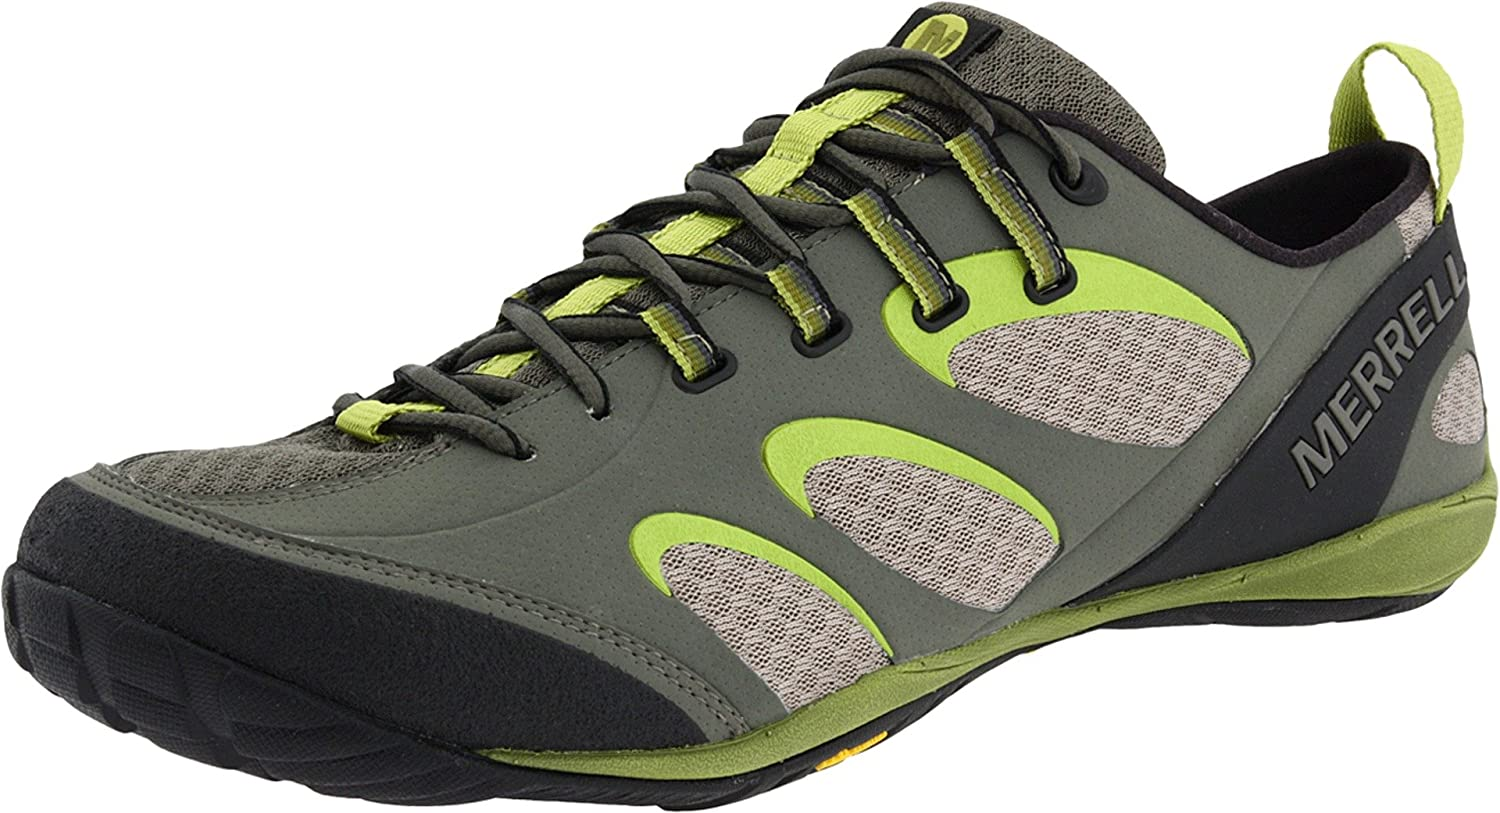 Merrell J85533_Dusty Olive/Amazon - Zapatillas de Deporte para Hombre, Color Verde, Talla 43: Amazon.es: Zapatos y complementos